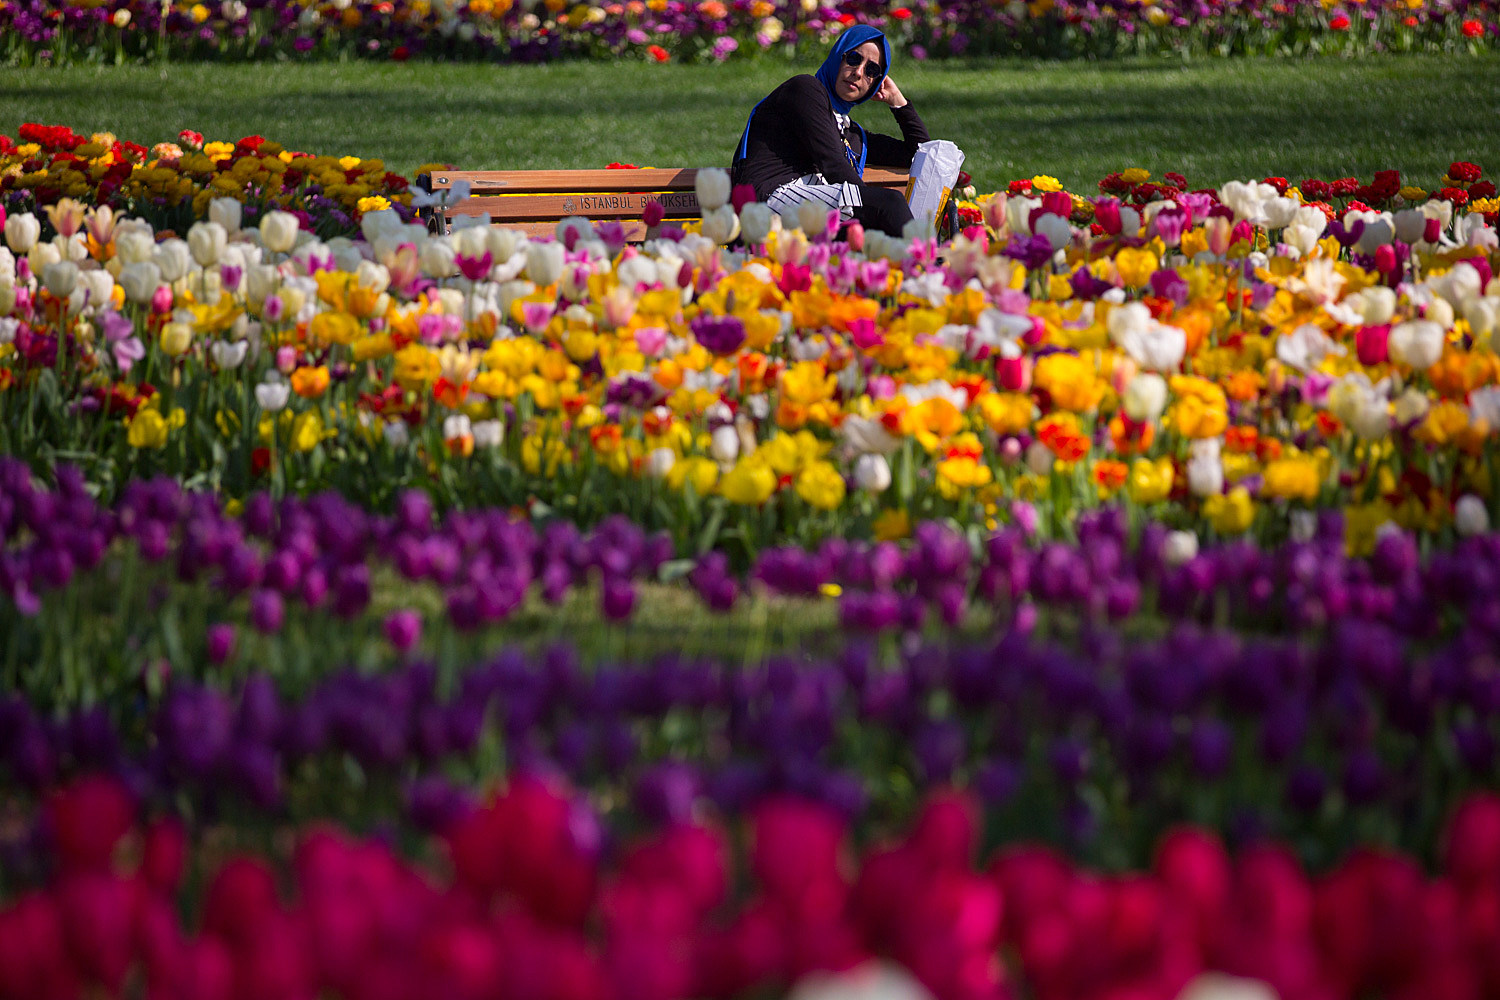 Istanbul Comes Alive With Colour During Its Annual Spring Tulip Festival